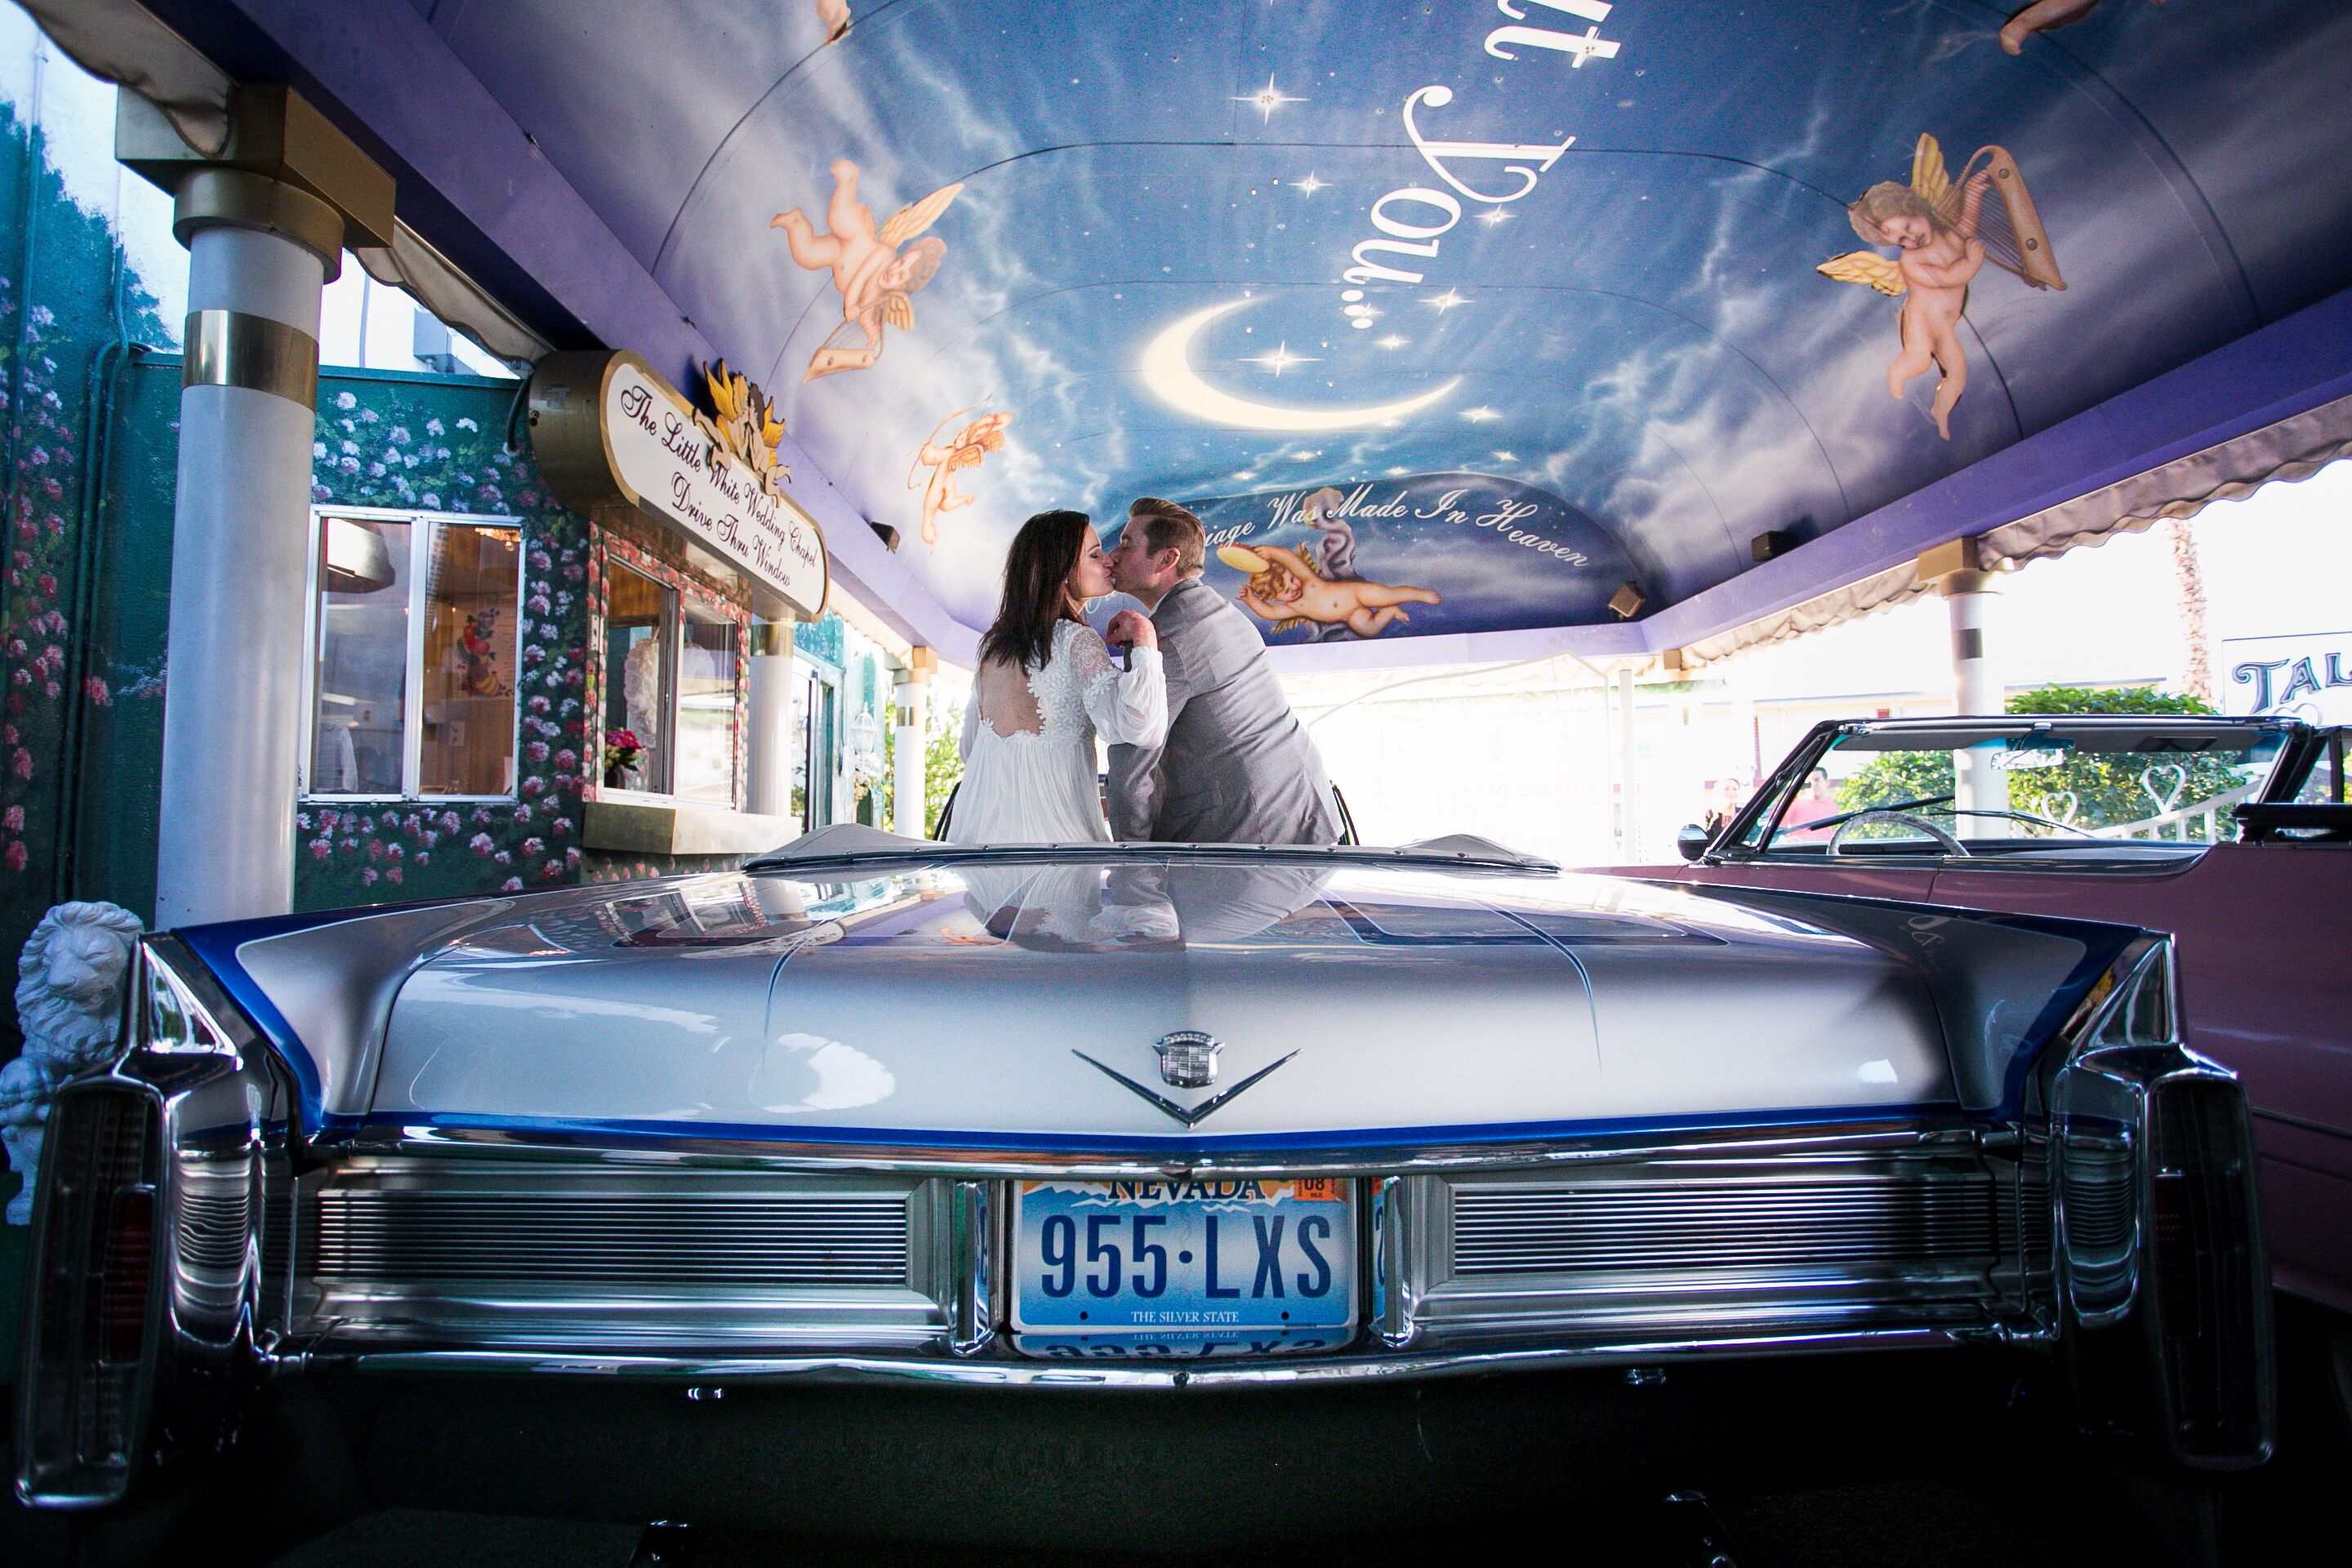 A Retro Drive Through Elopement at Little White Wedding Chapel in Las Vegas